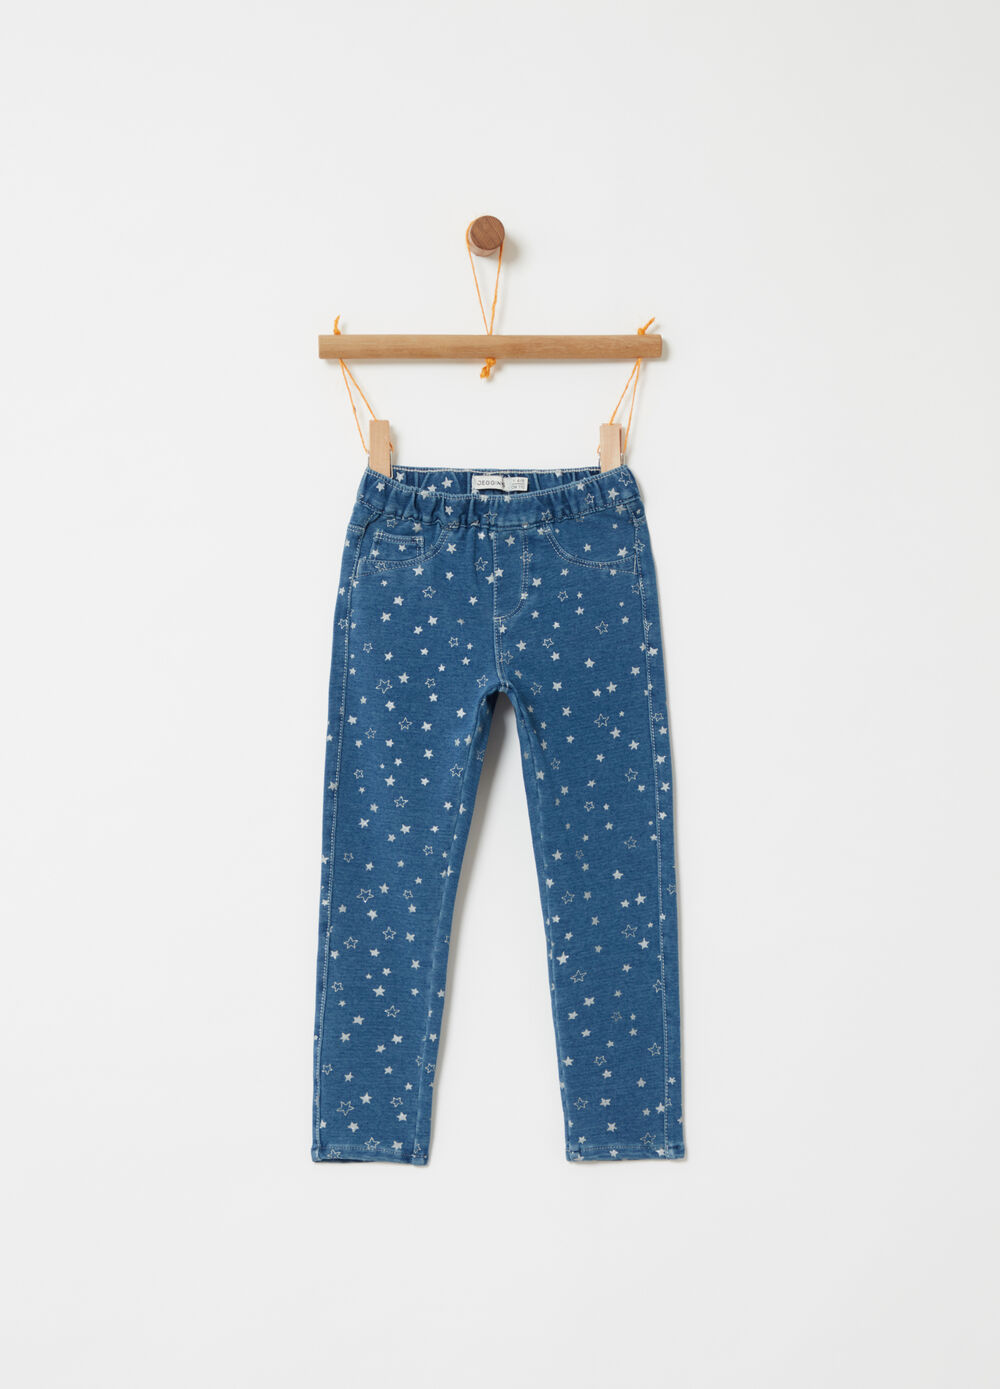 Stretch fleece jeggings with star pattern